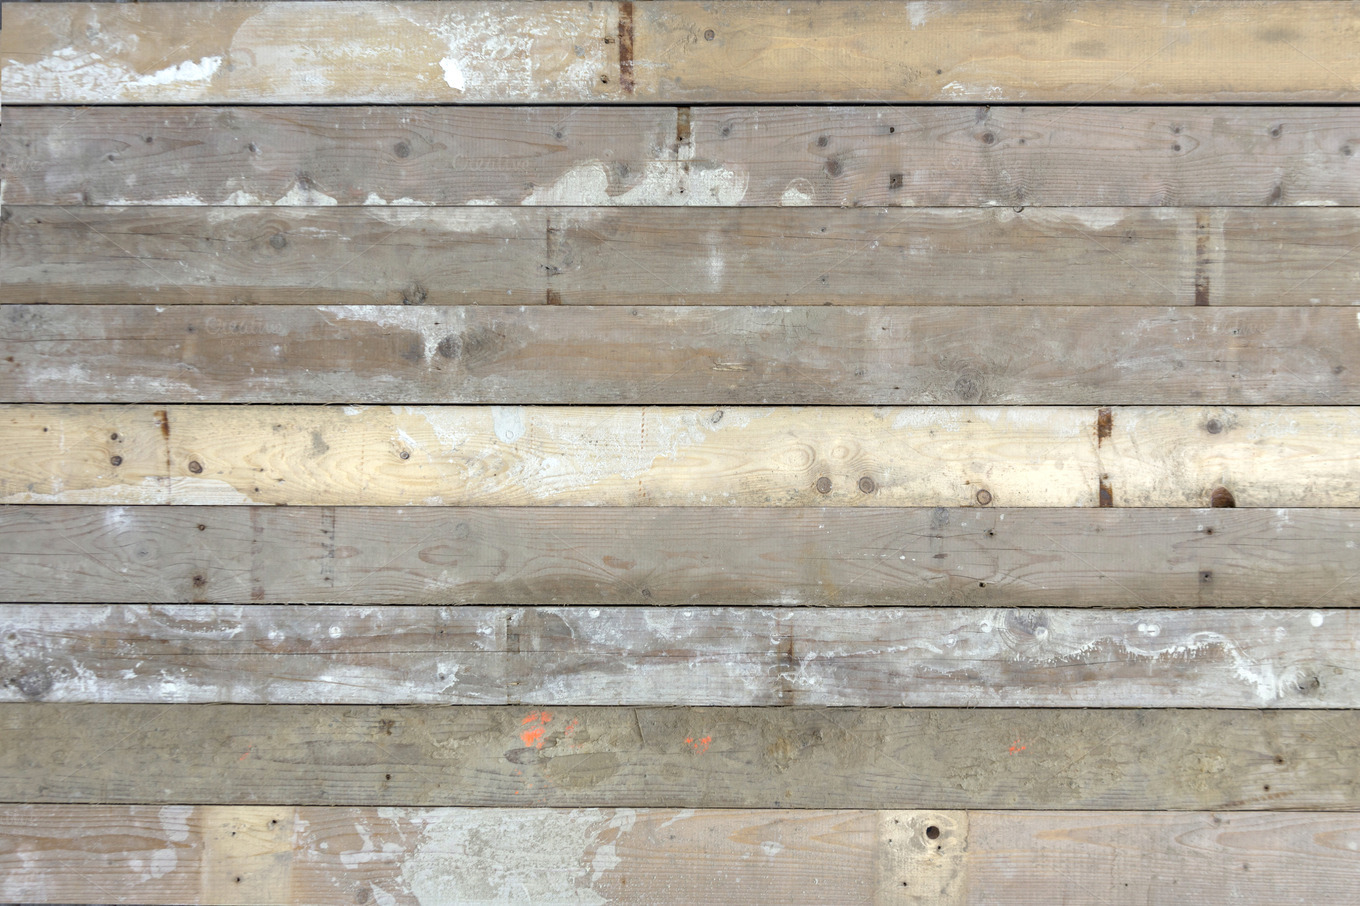 Used wood scaffolding planks abstract photos on creative for Recycled wood board